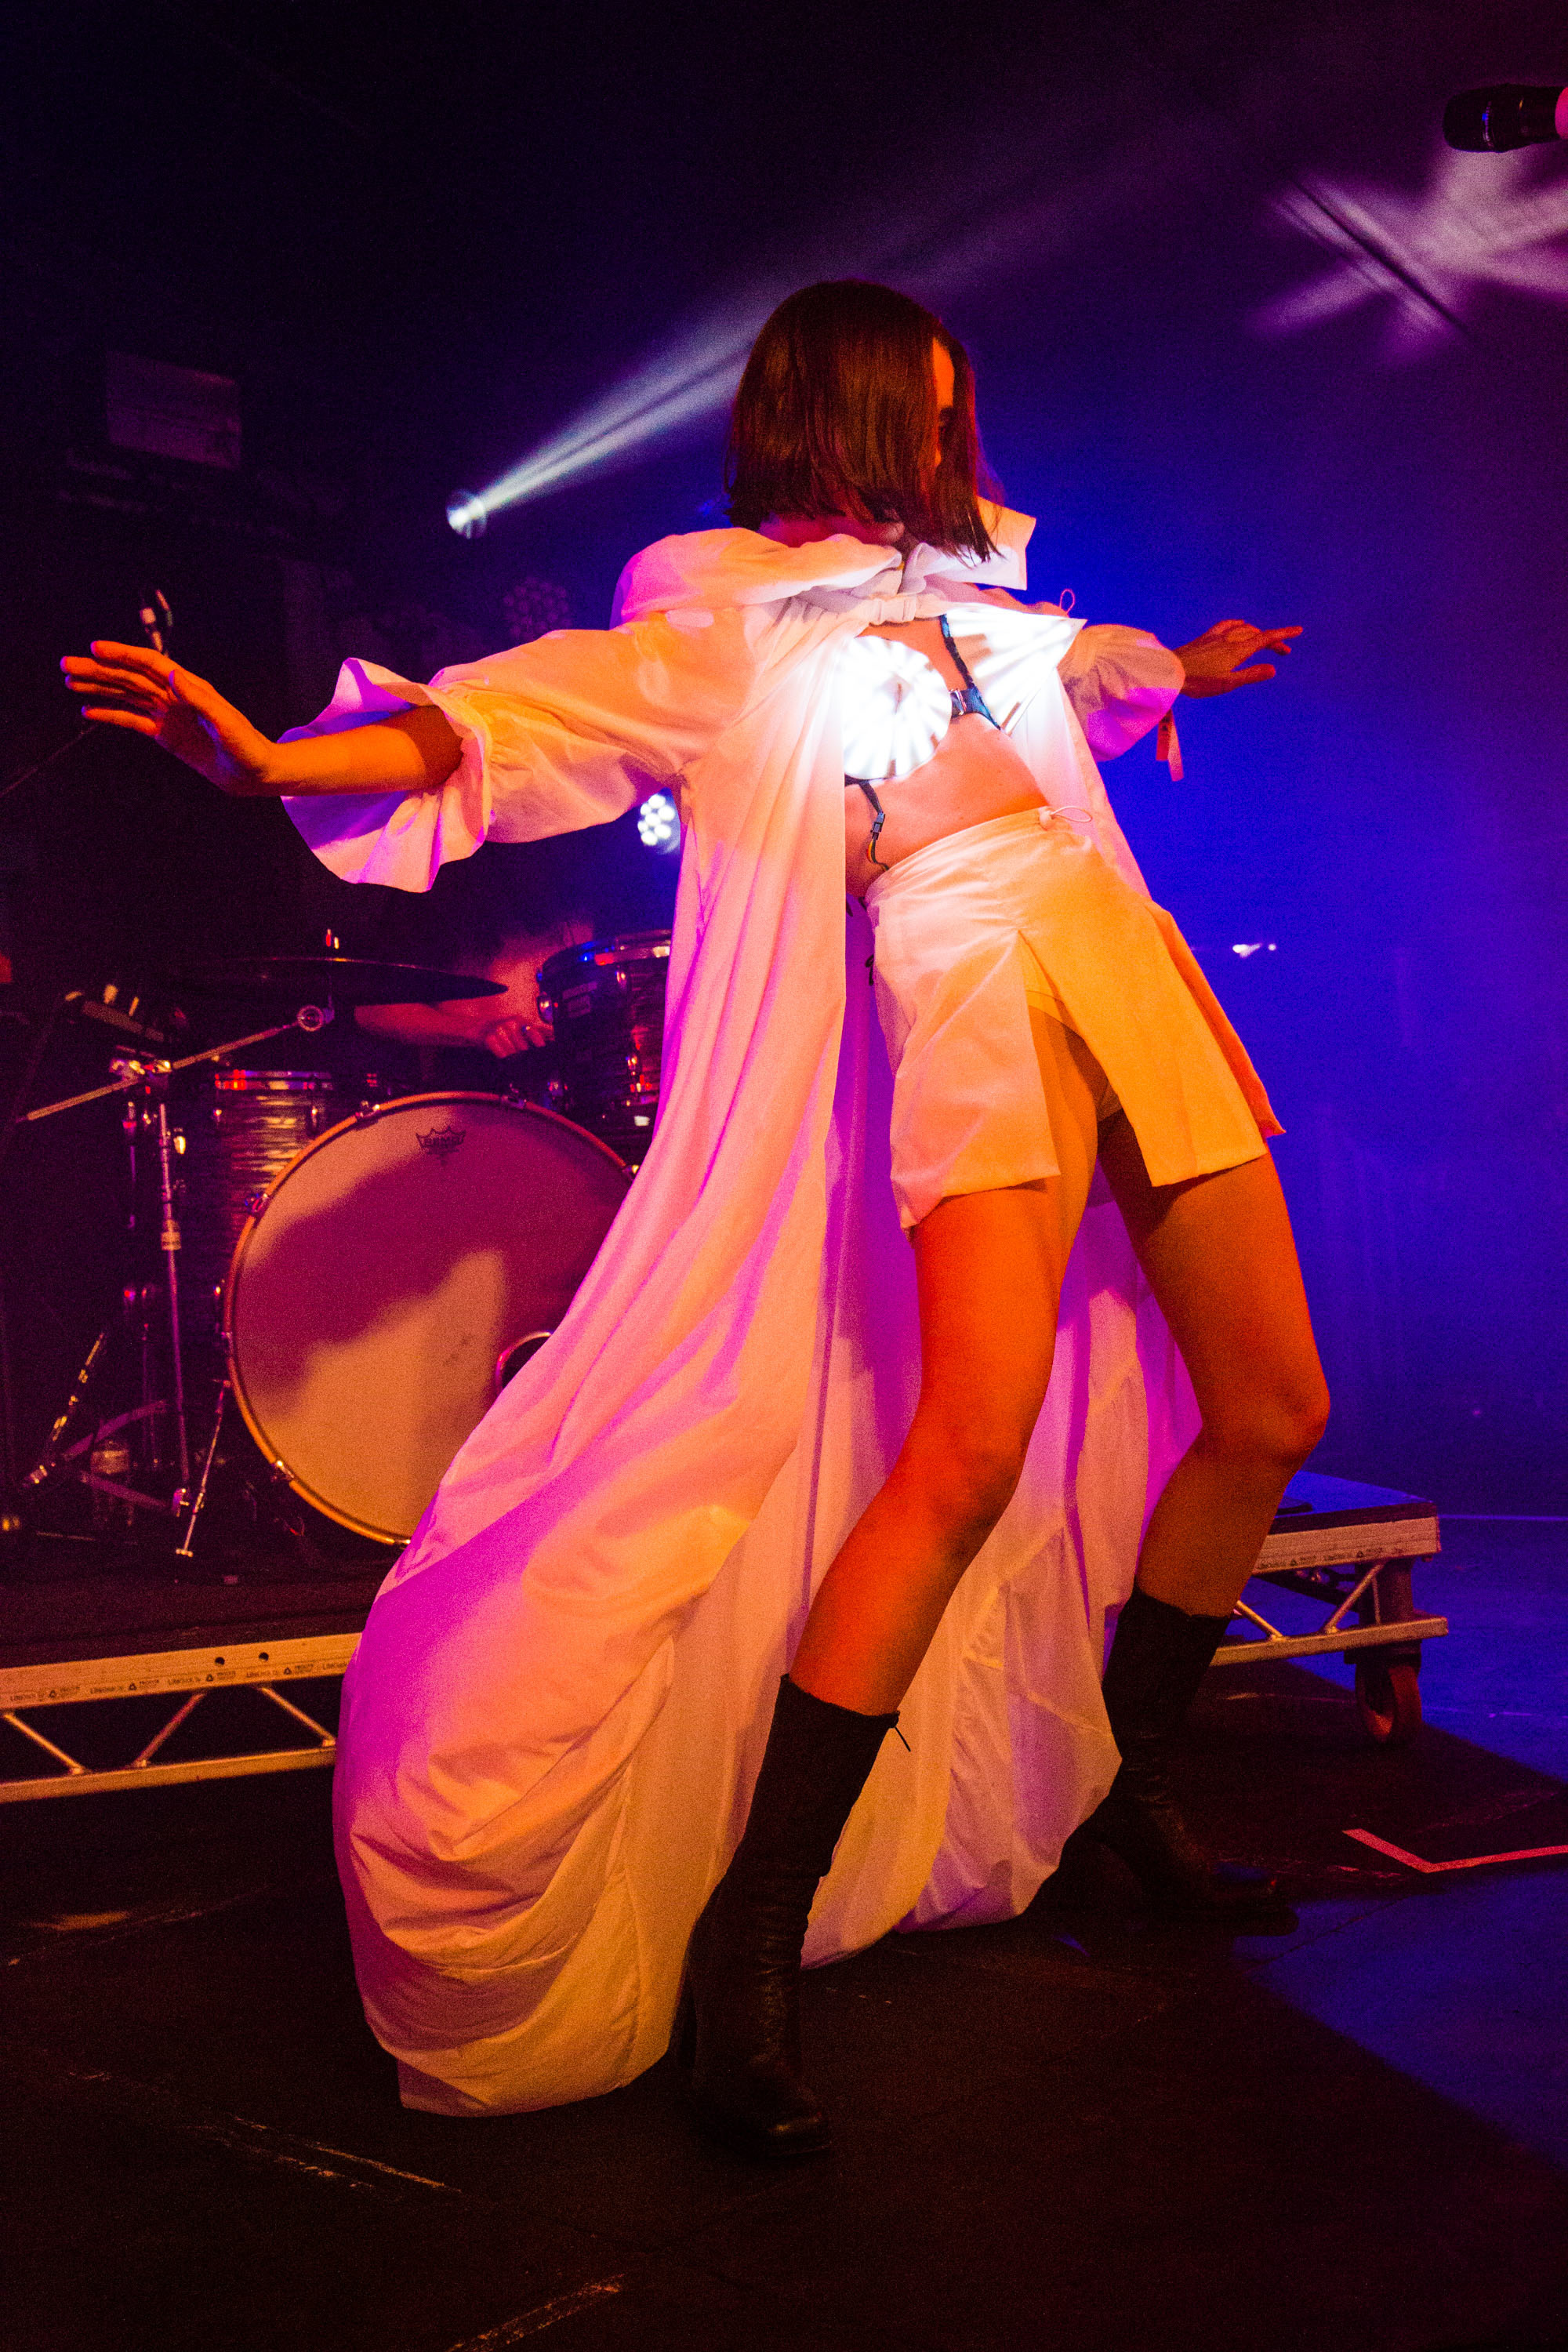 Confidence Man, Another Sky, Fat White Family and more bring The Great Escape 2019 to a varied and excitable close